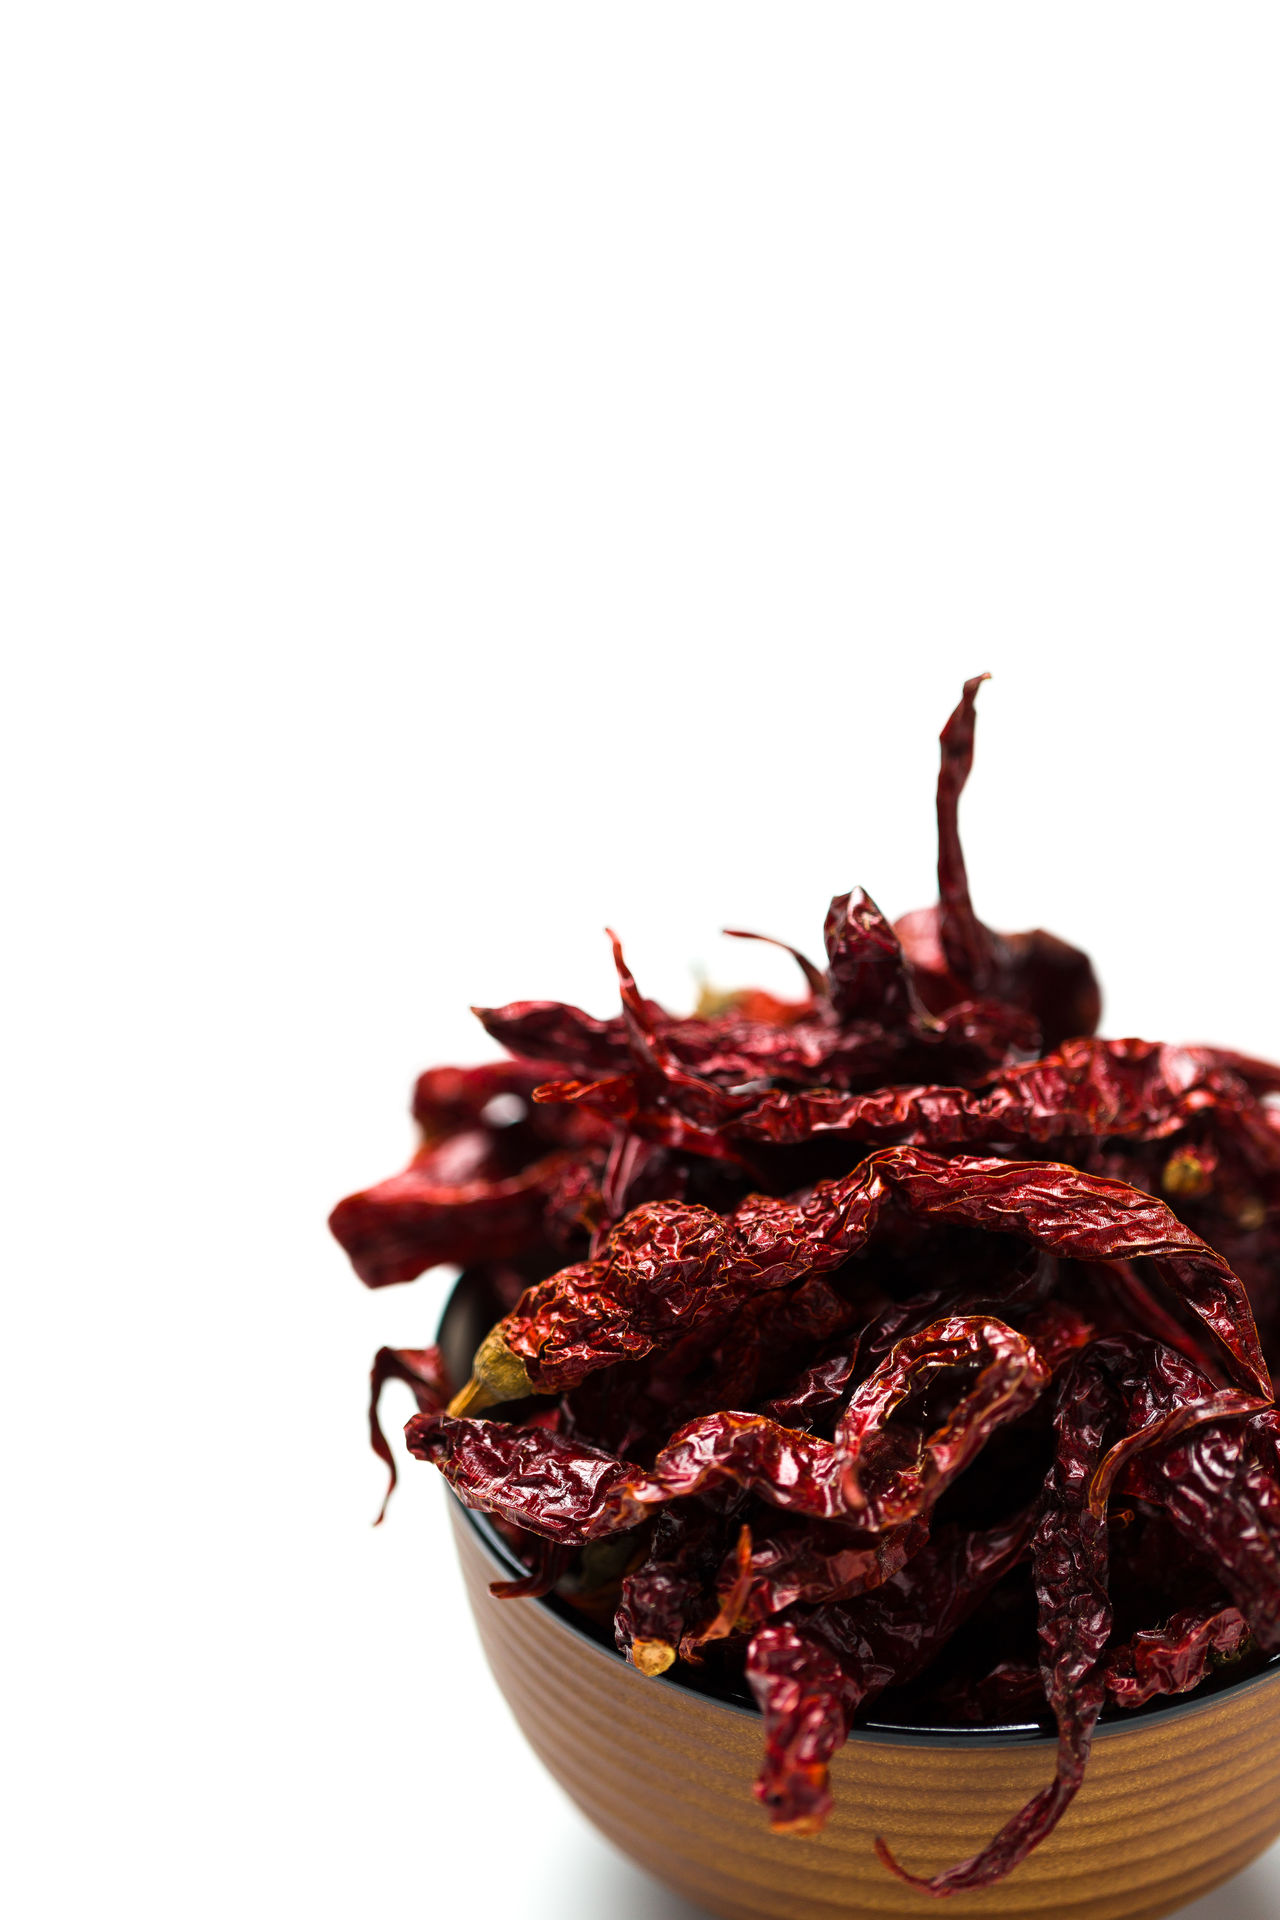 Dried chillies in a bowl isolated over white background. ASIA Cayenne Chili  Chili Pepper Chillies Cook  Cooking Cuisine Diet Dried Flavor Flavoring Food Healthy Eating Hot India Ingredient Organic Paprika Pepper Seasoning Spice Spicy Taste Tasty